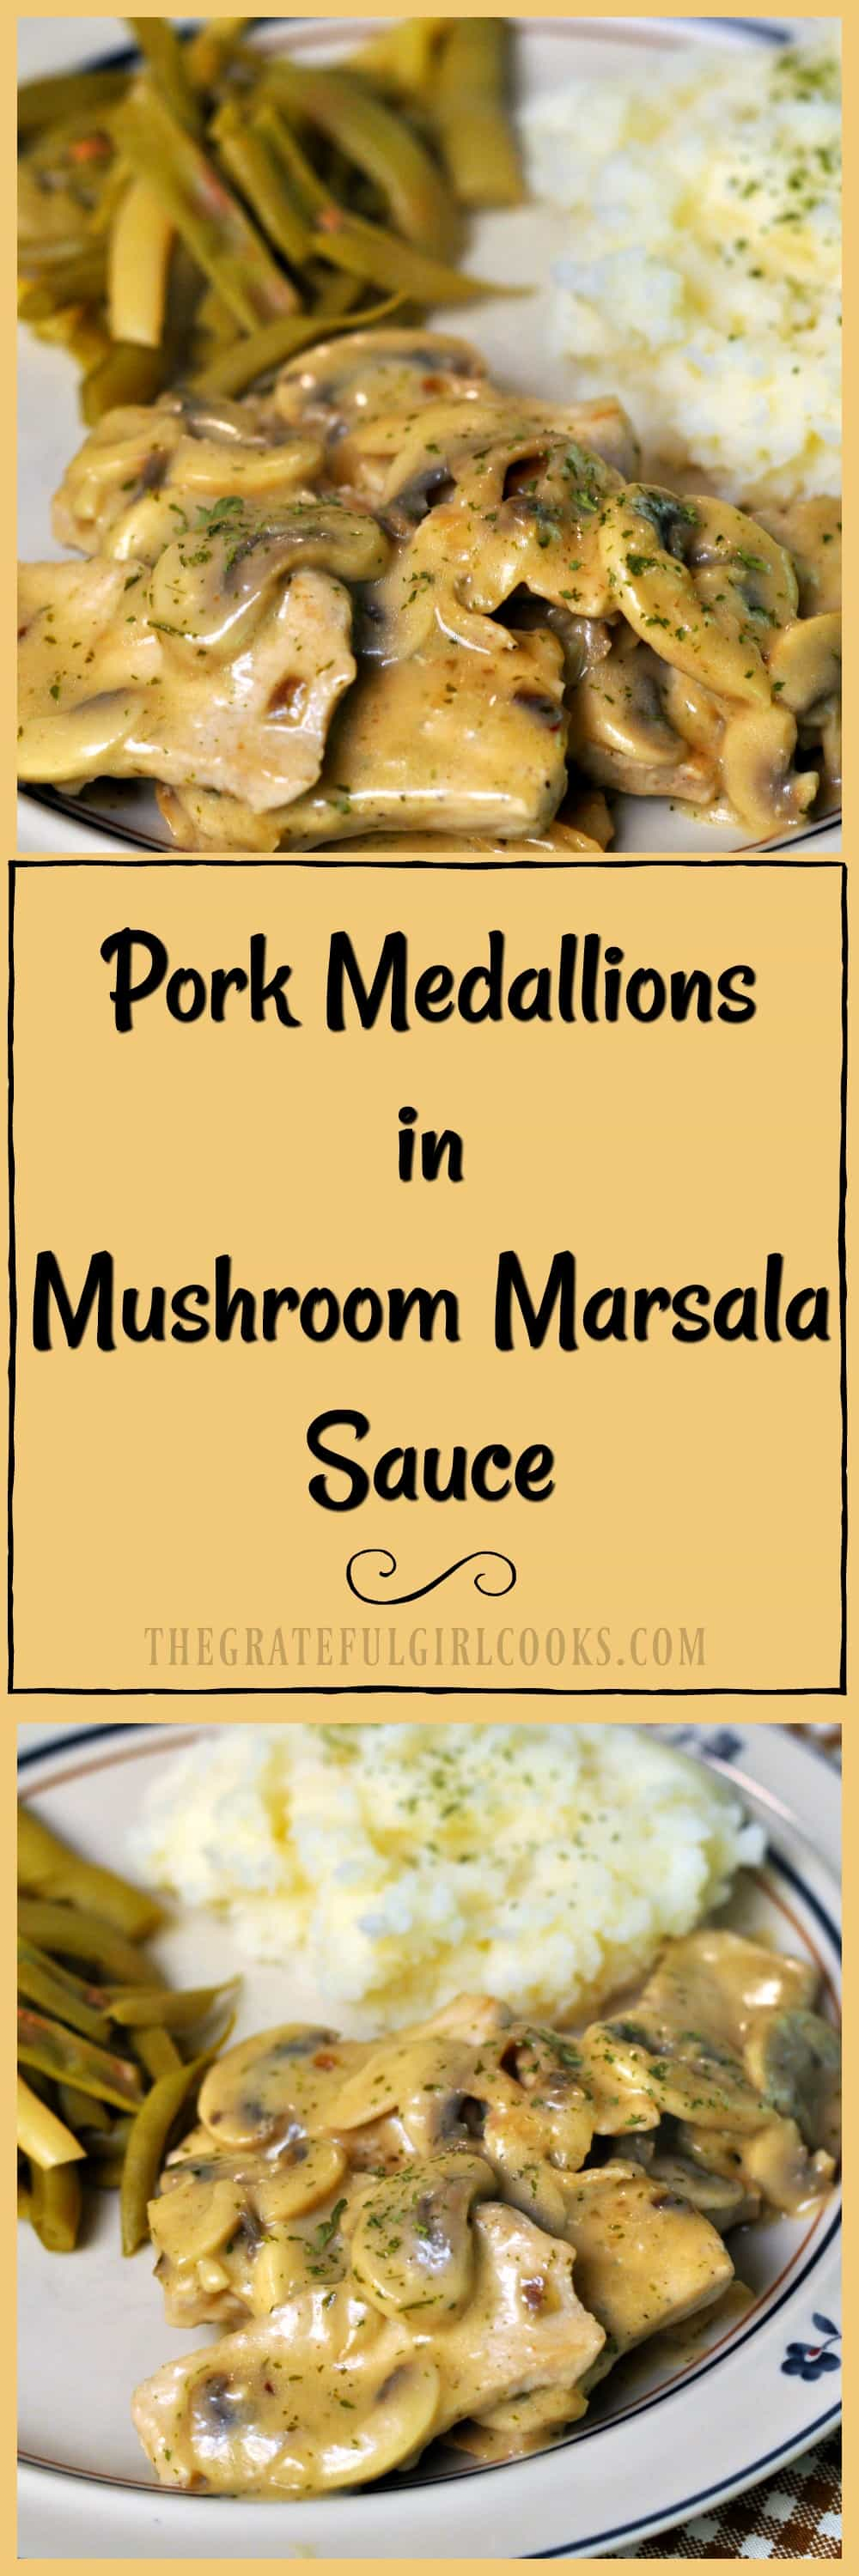 Pork Medallions in Mushroom Marsala Sauce / The Grateful Girl Cooks! Delicious and easy one-pan dish, ready in 30 minutes!